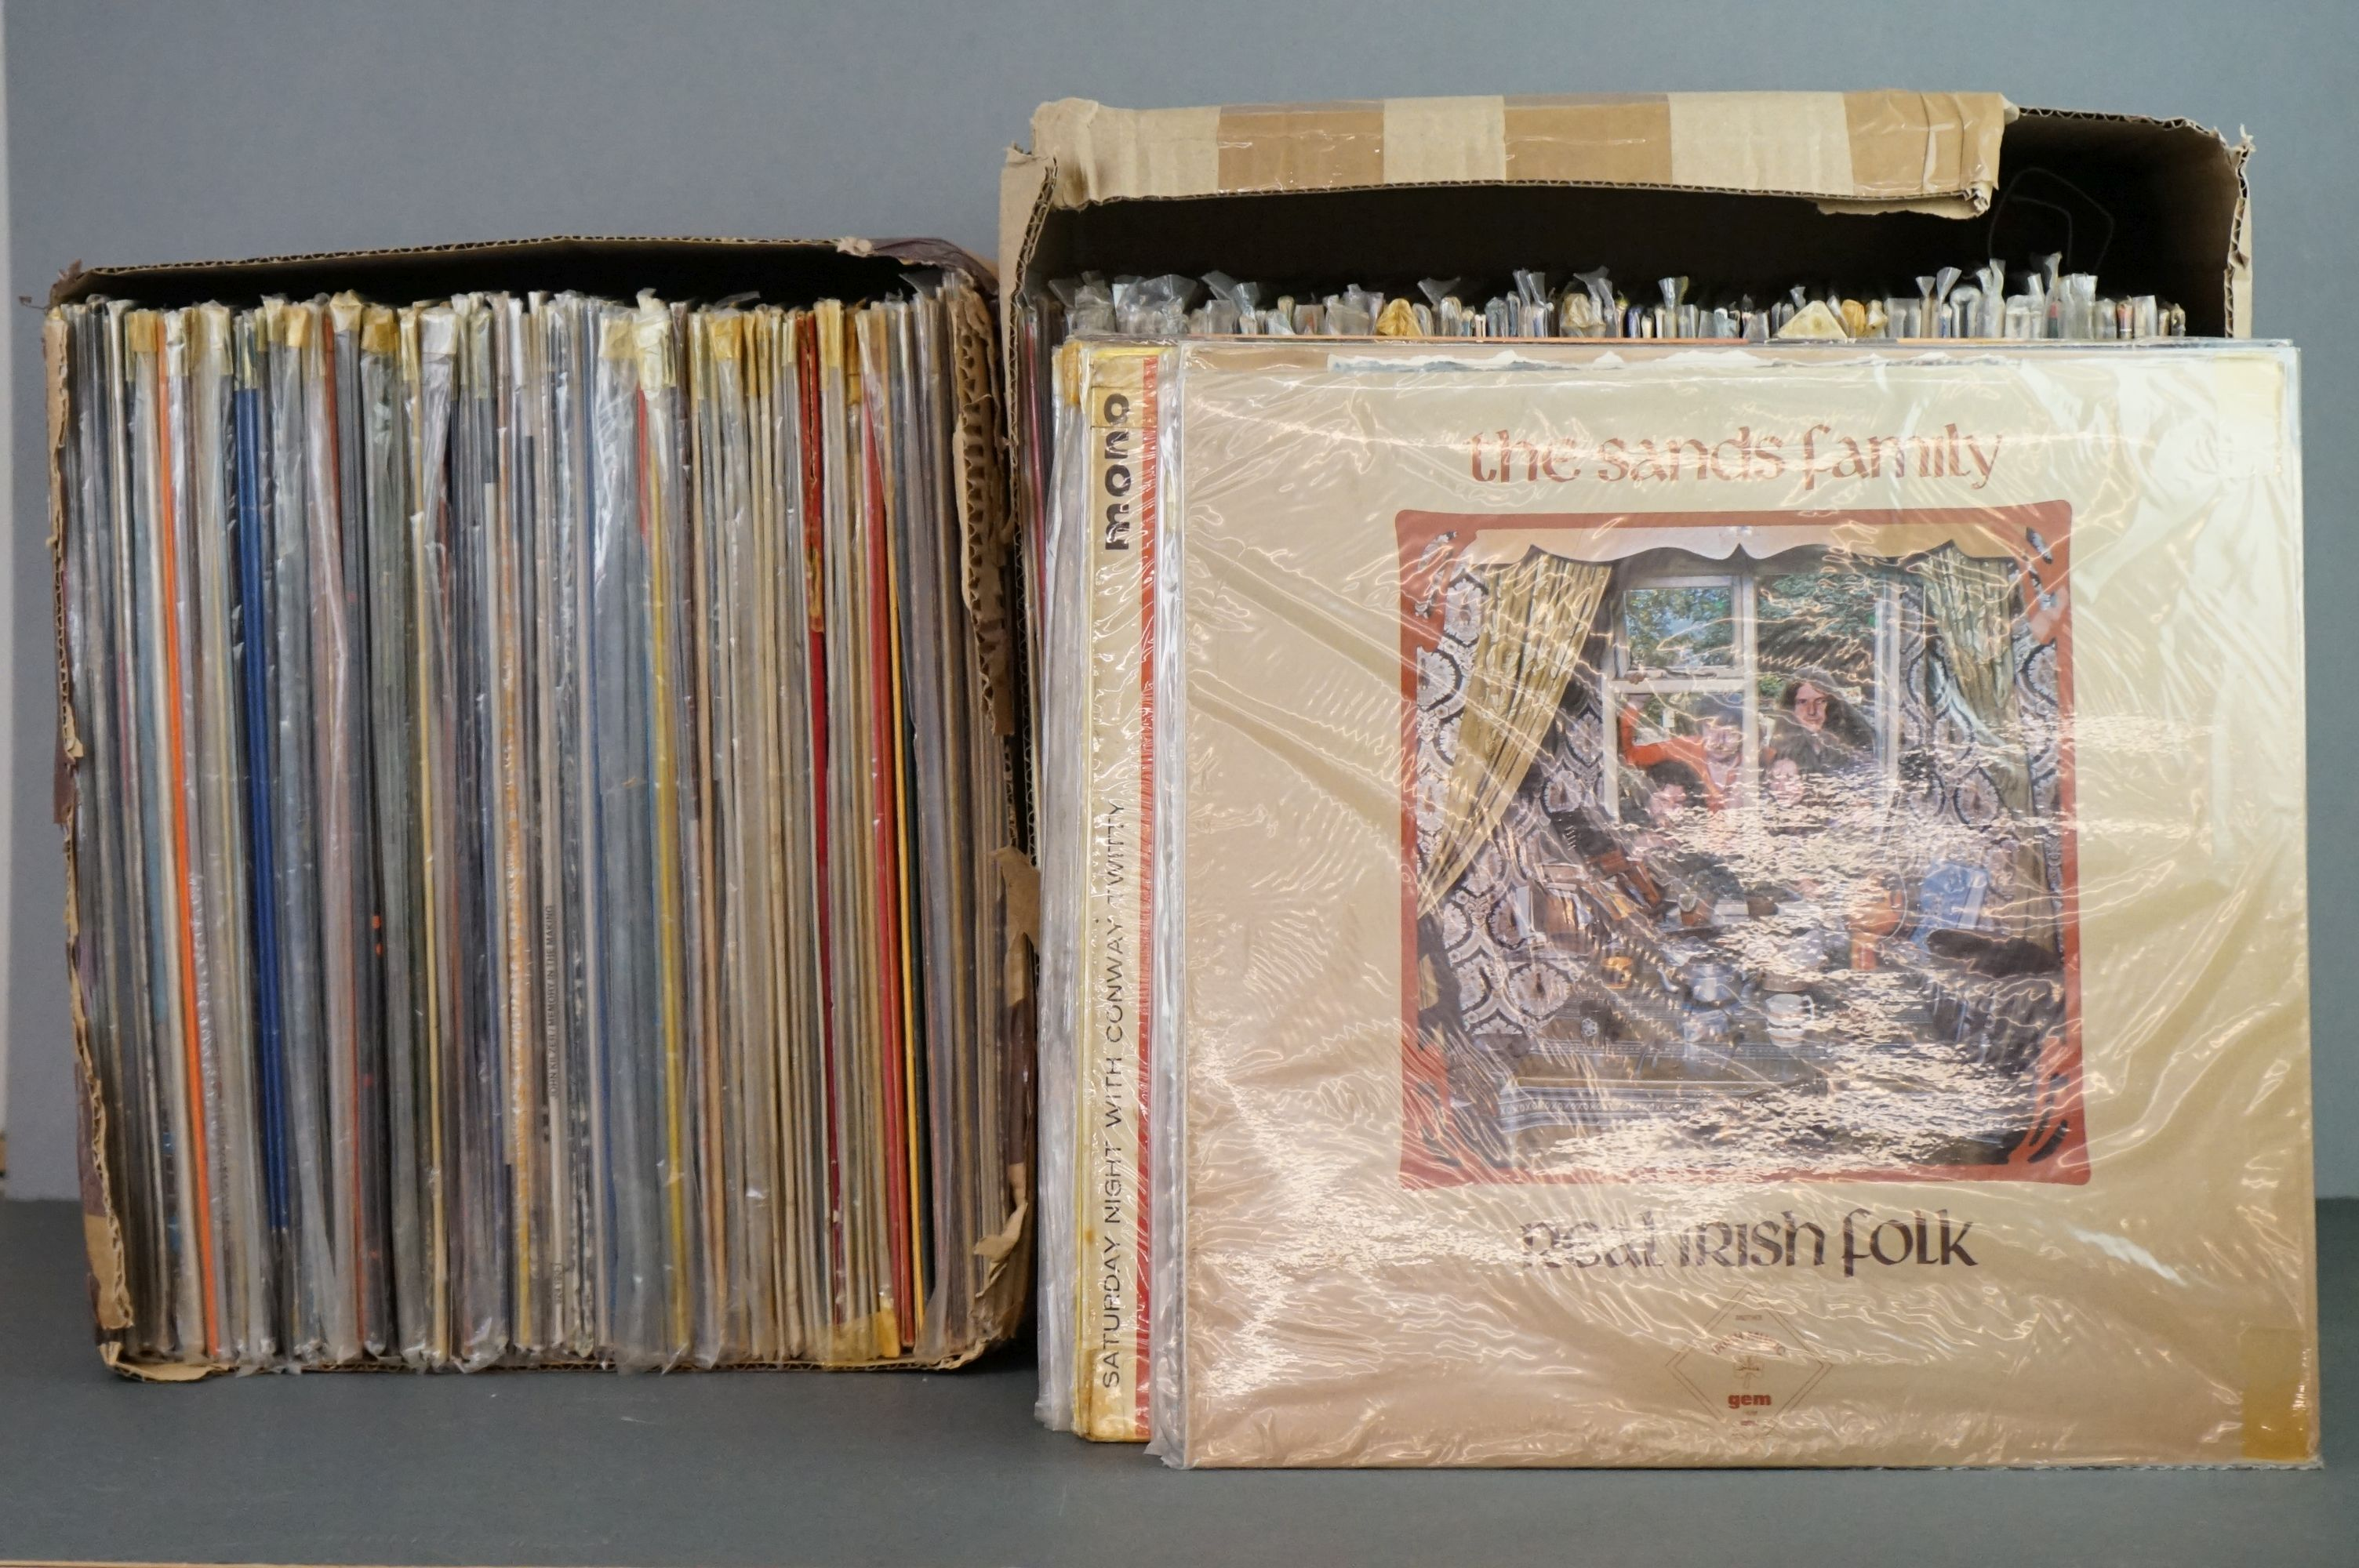 Vinyl - Around 200 LPs to include Country, Pop, Easy Listening etc, sleeves and vinyl vg+ (two